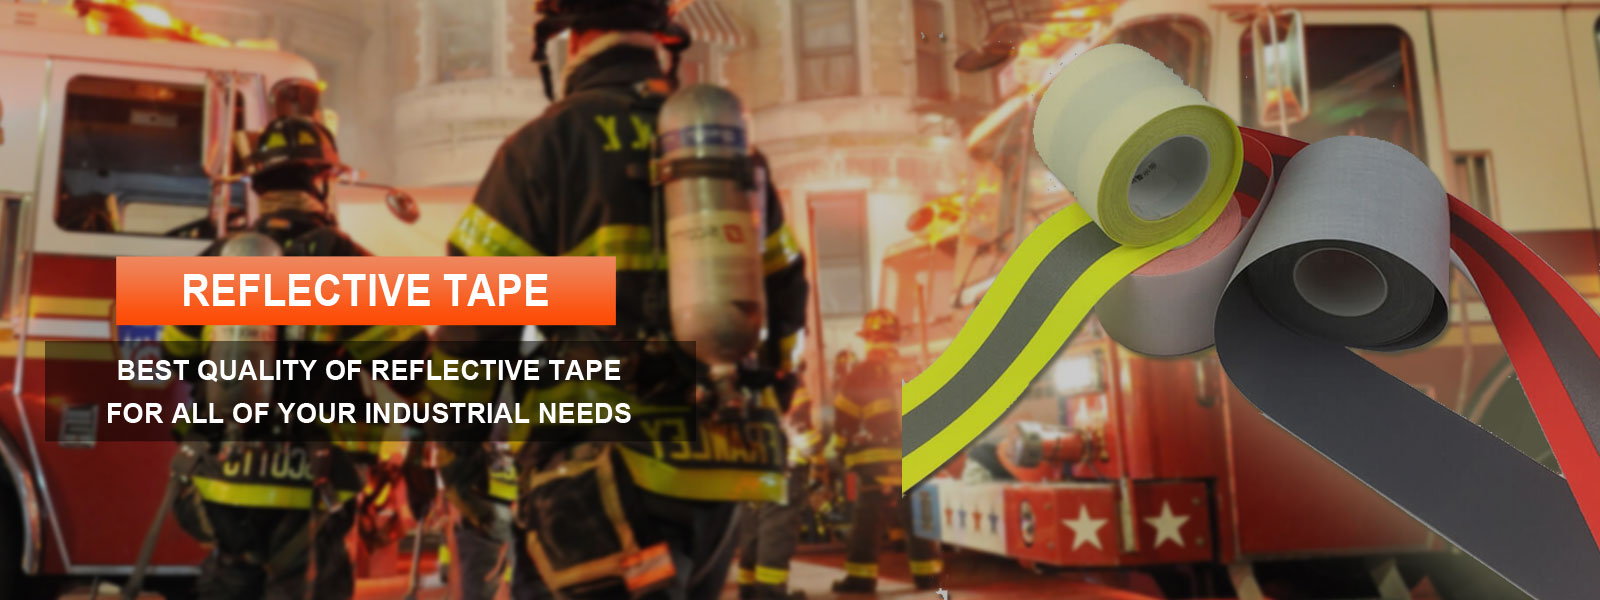 Reflective Tape Manufacturers in Lebanon